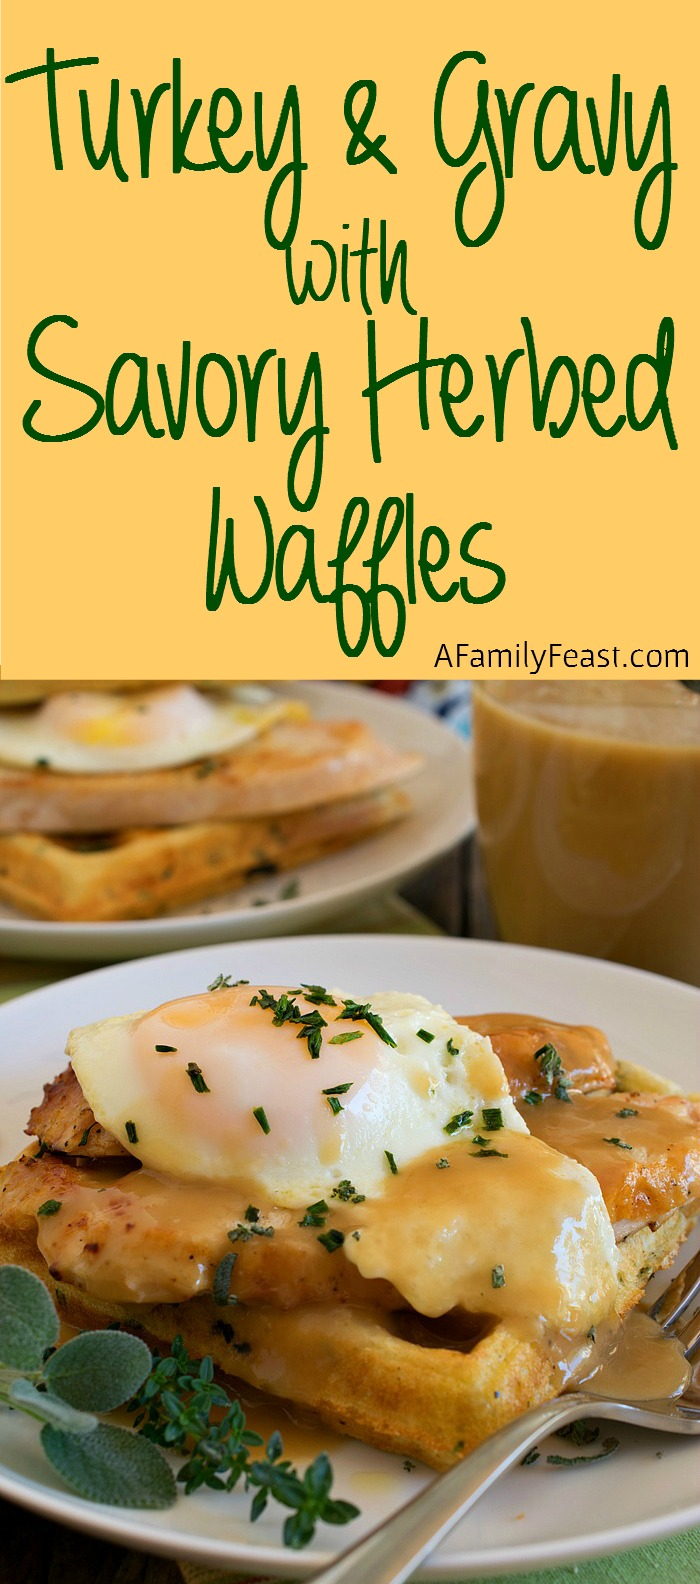 Turkey and Gravy Savory Herbed Waffles - Enjoy a fantastic breakfast made with Thanksgiving leftovers!